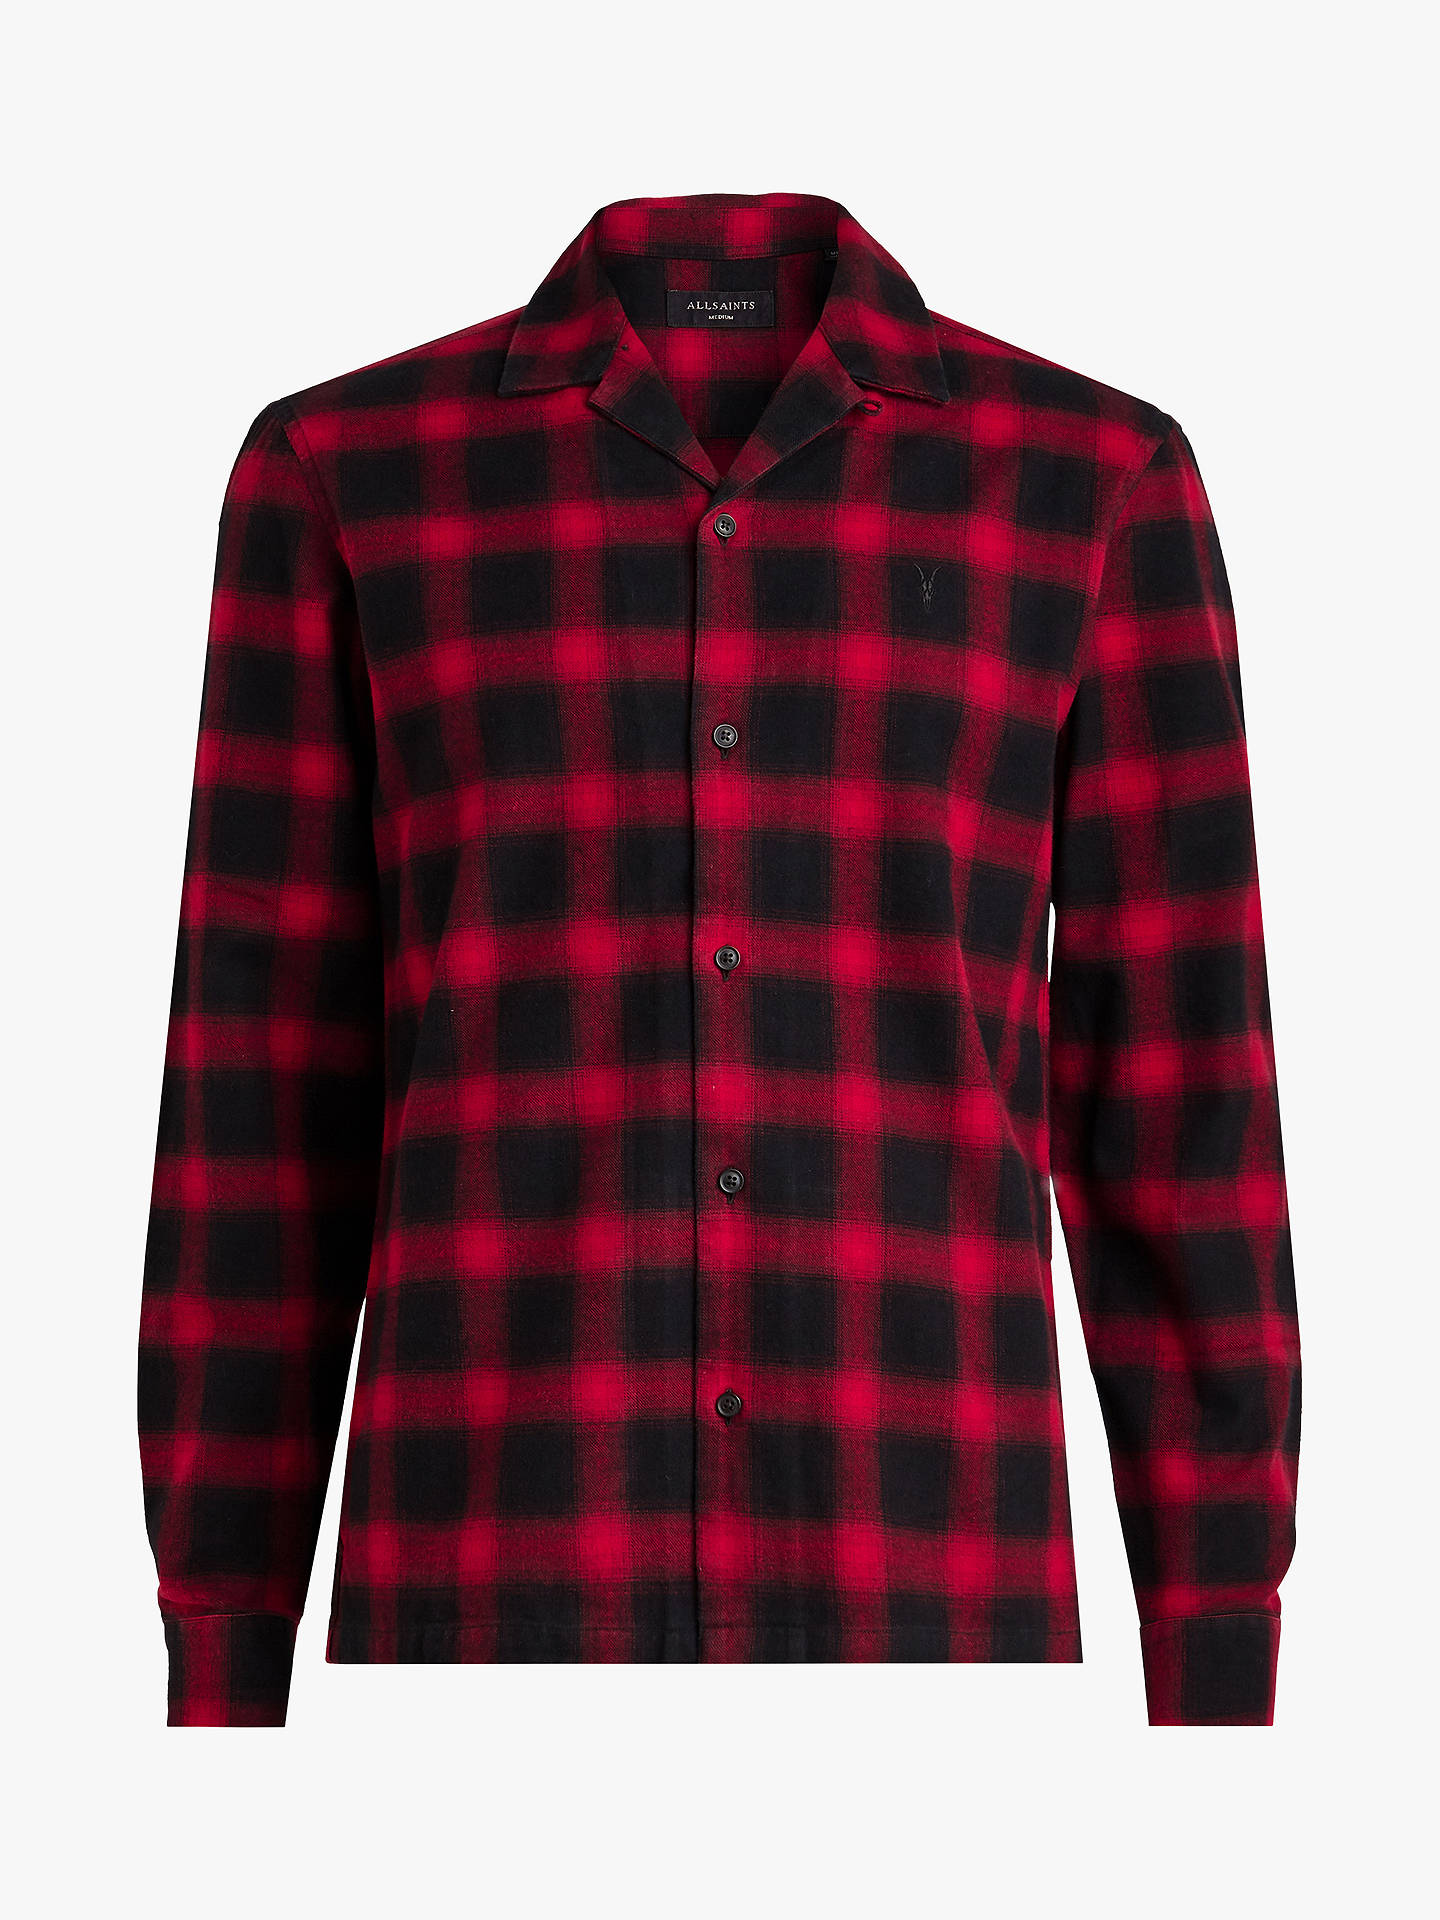 BuyAllSaints Clyde Long Sleeve Check Shirt , Red/Black, L Online at johnlewis.com